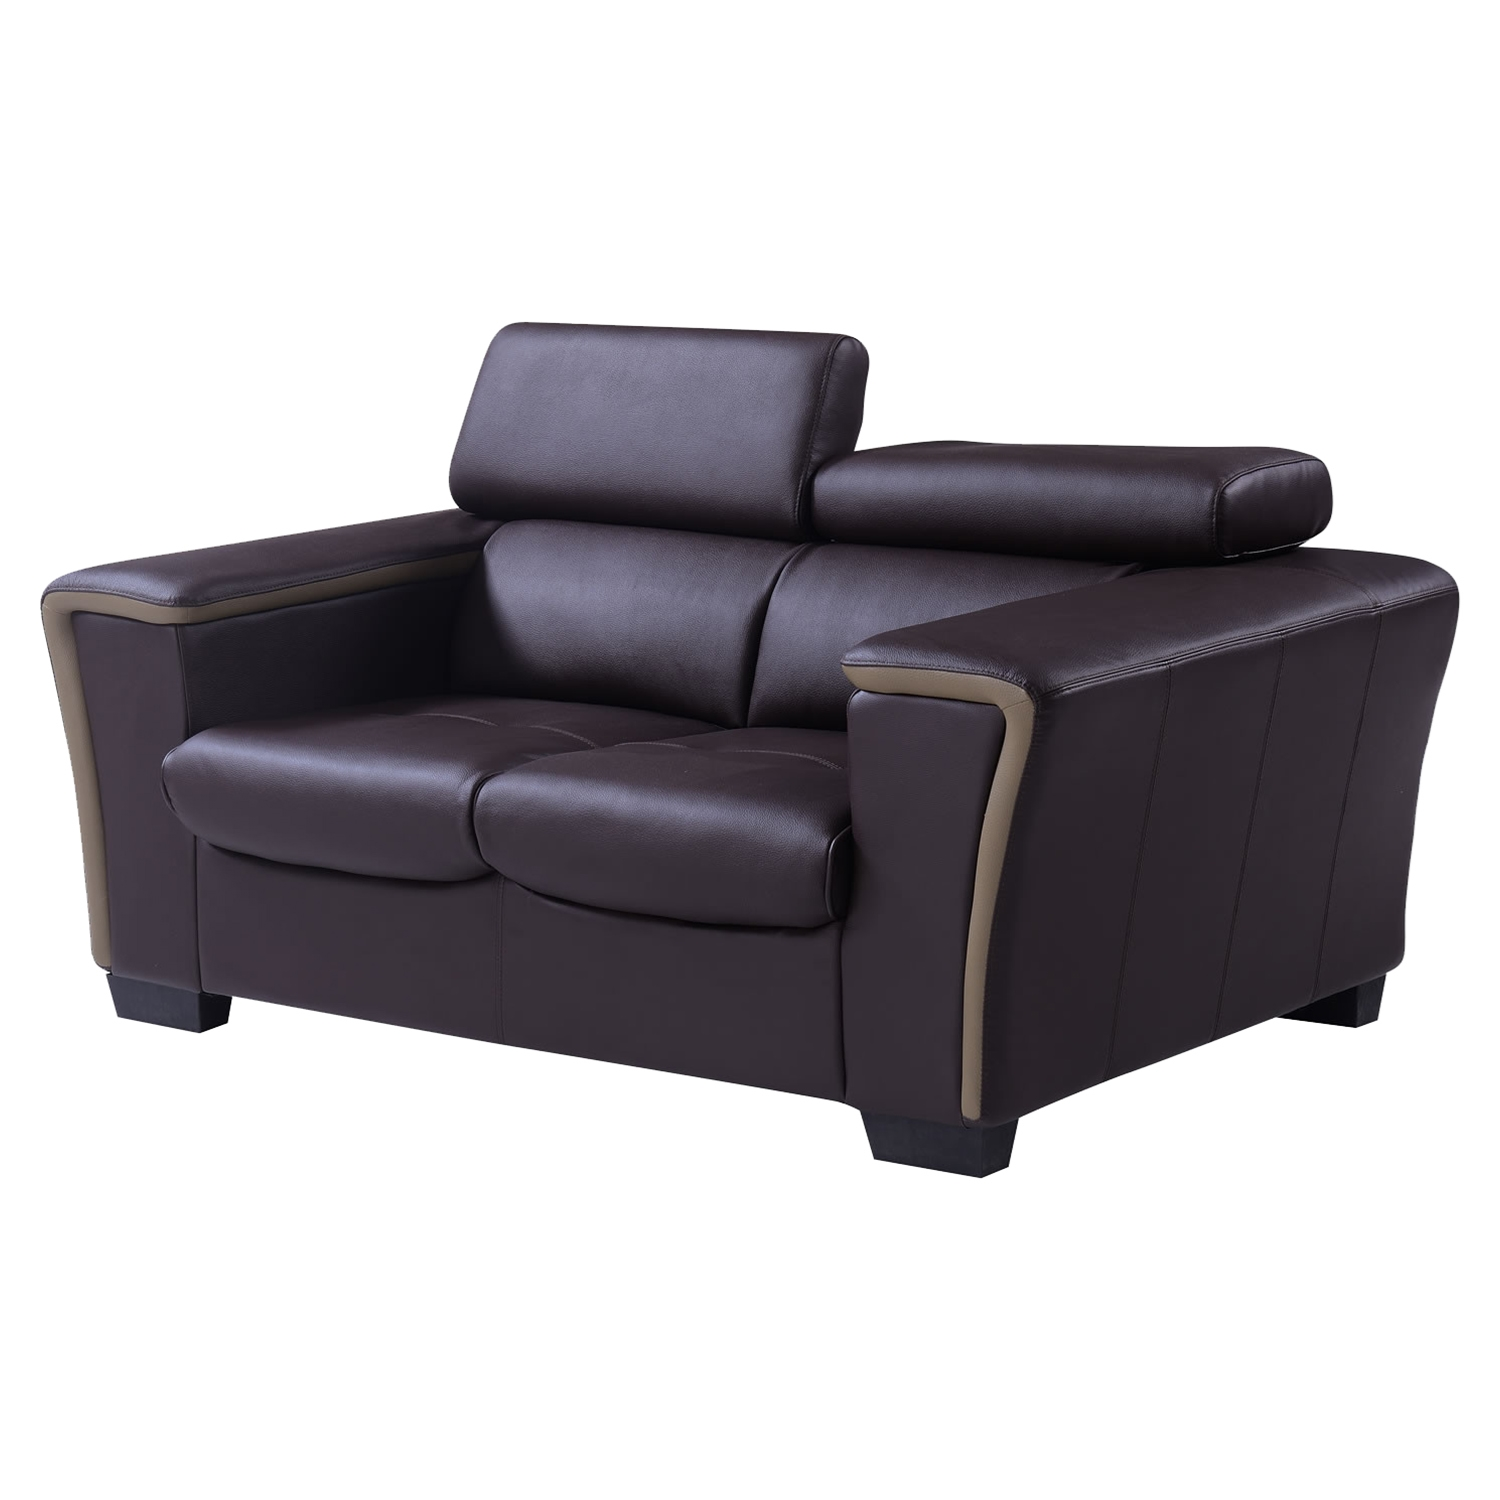 Mikayla Loveseat with Headrest Function in Chocolate/Dark Cappuccino